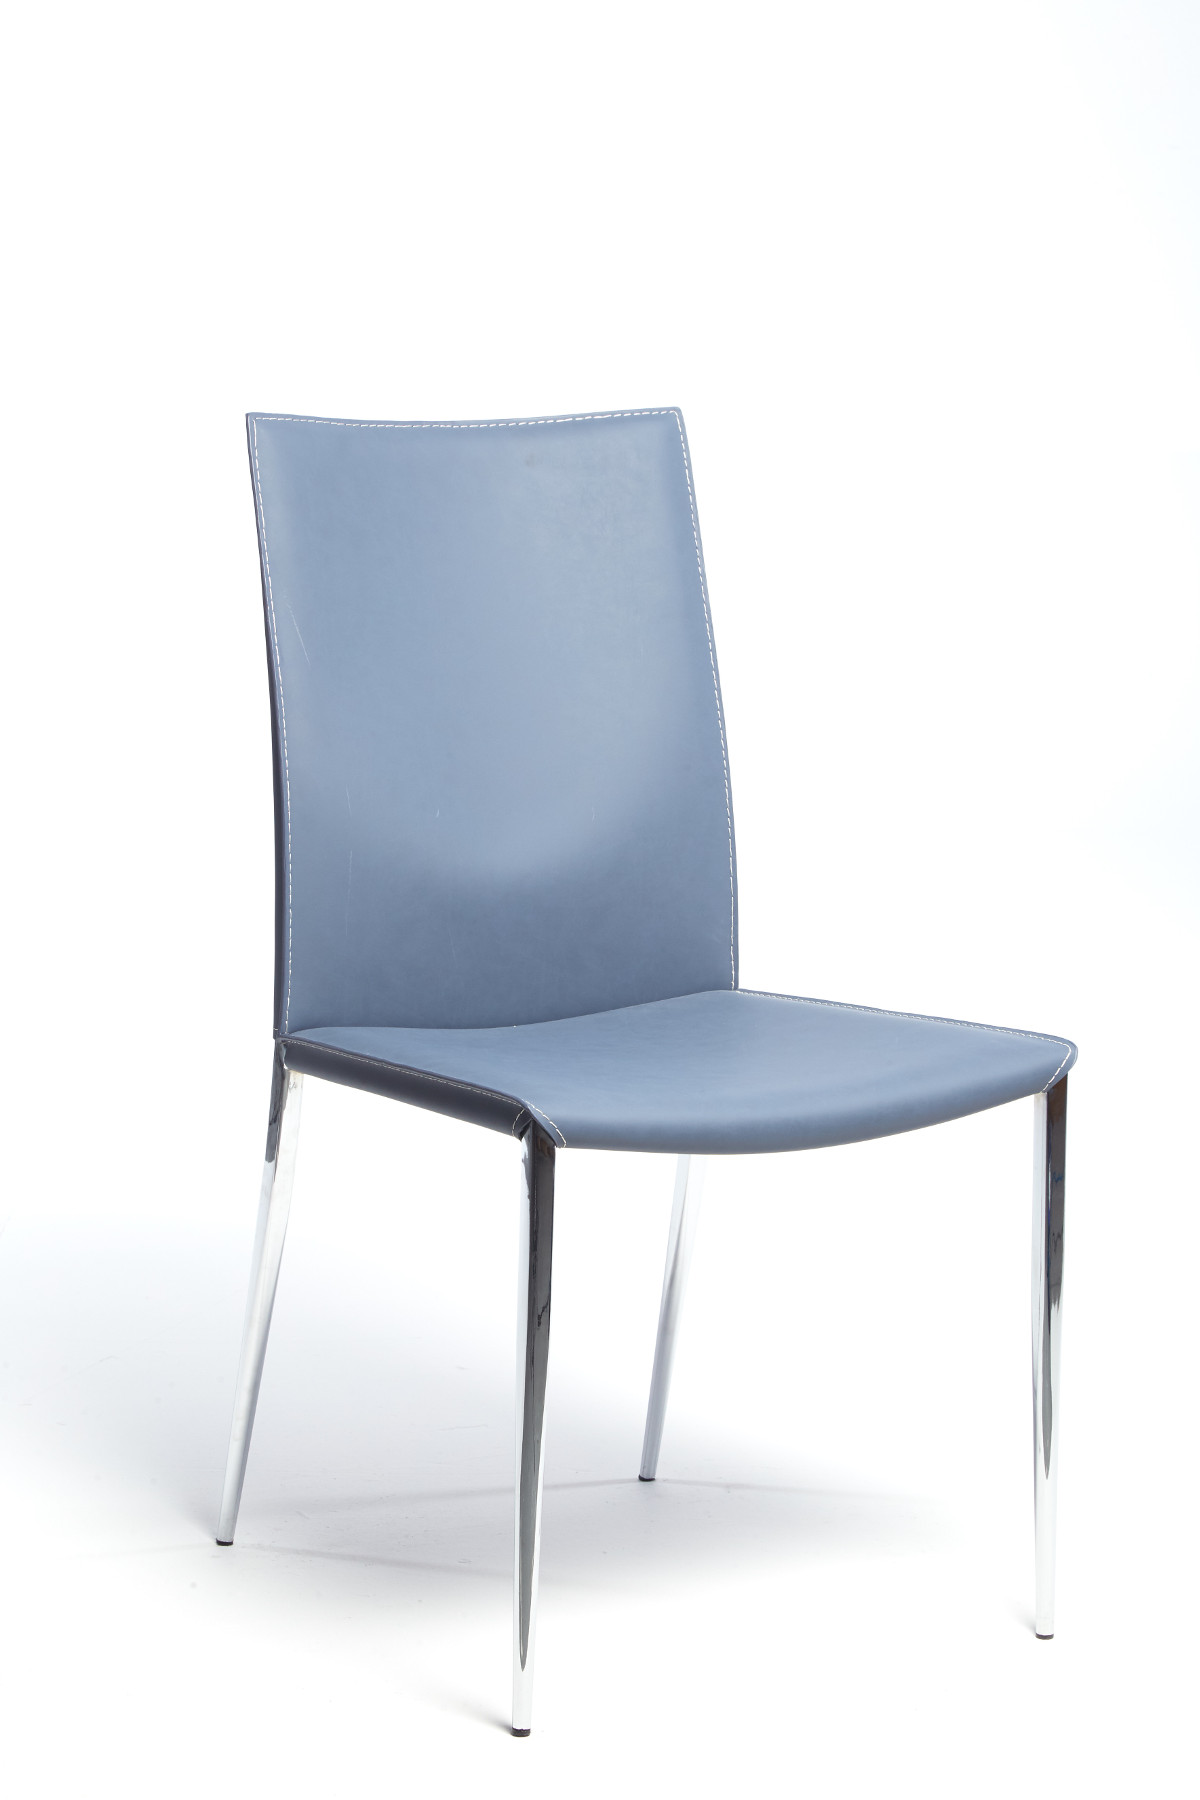 Maxsoft Blue Leather Chair